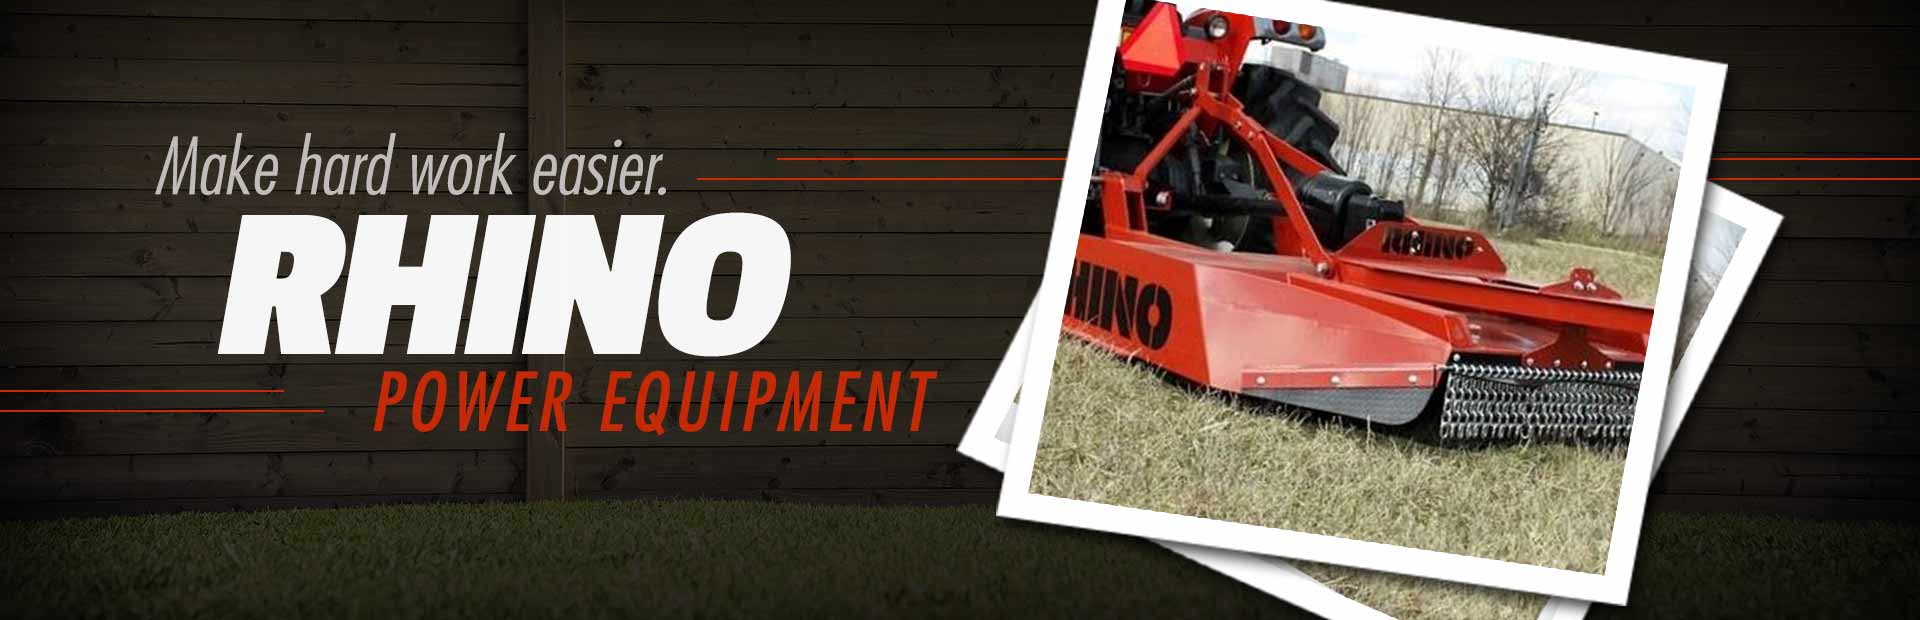 Rhino Power Equipment: Click here to view the models.